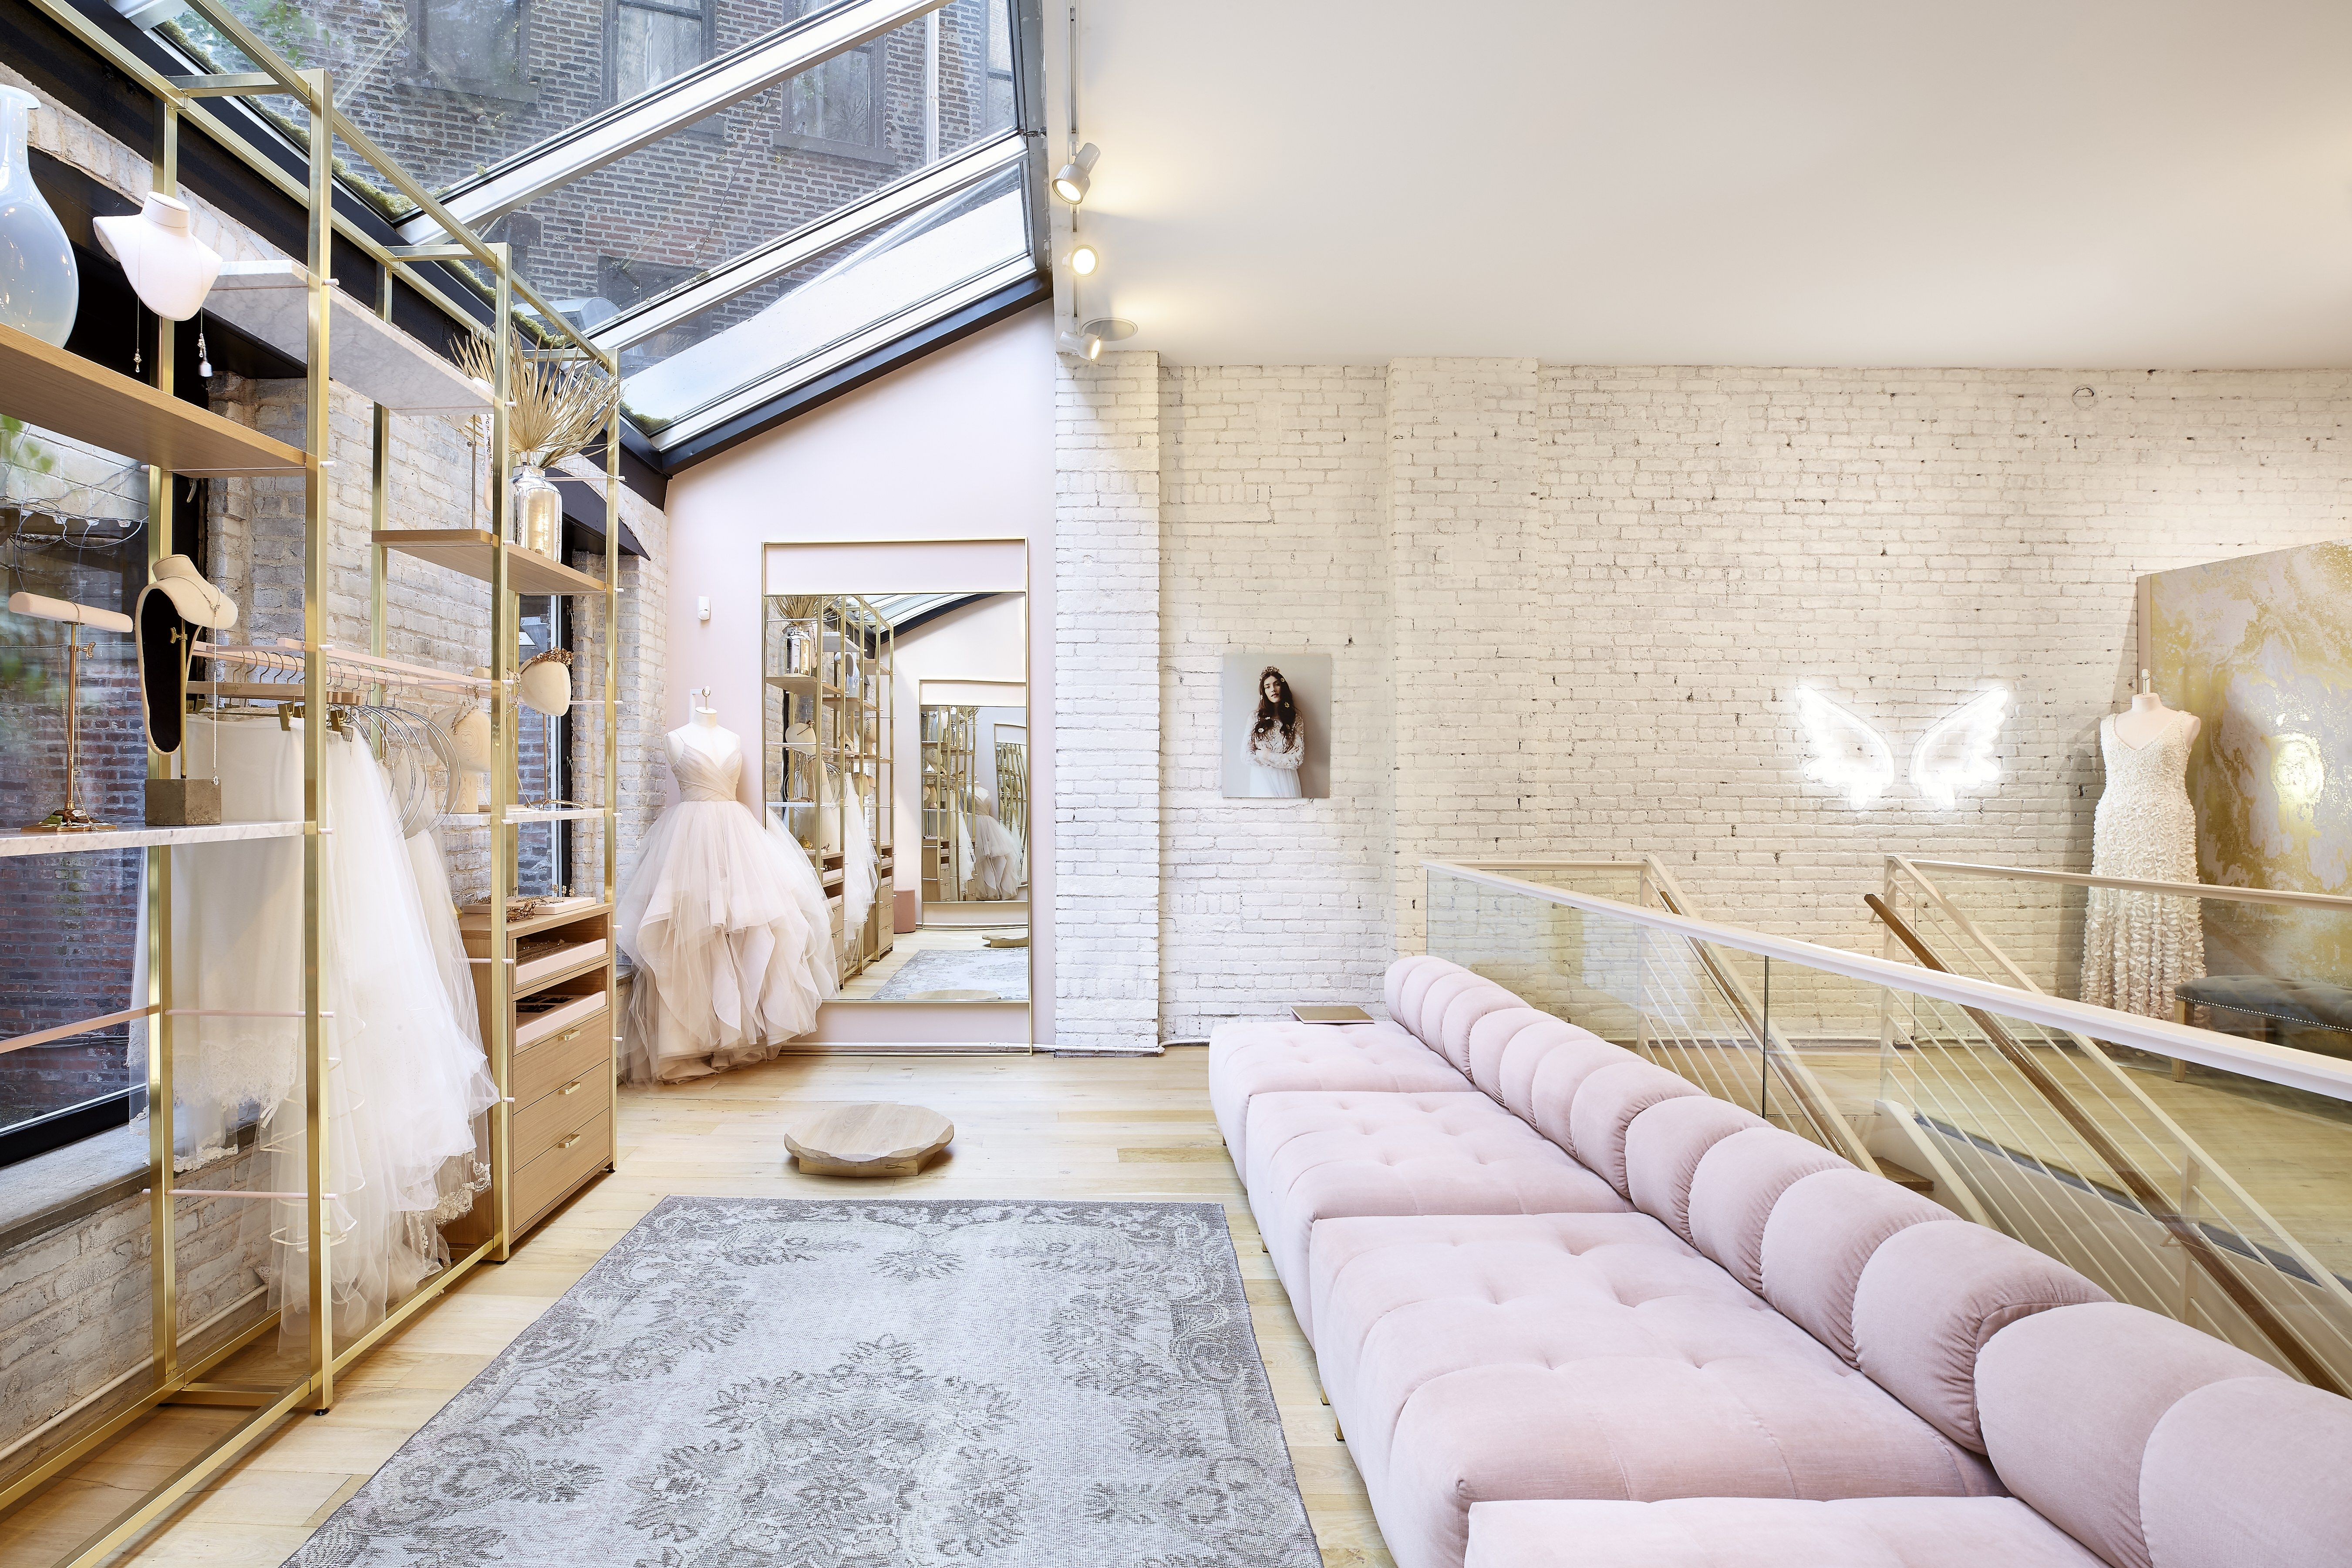 The 9 Best Bridal Salons in New York City in 2020 Bridal